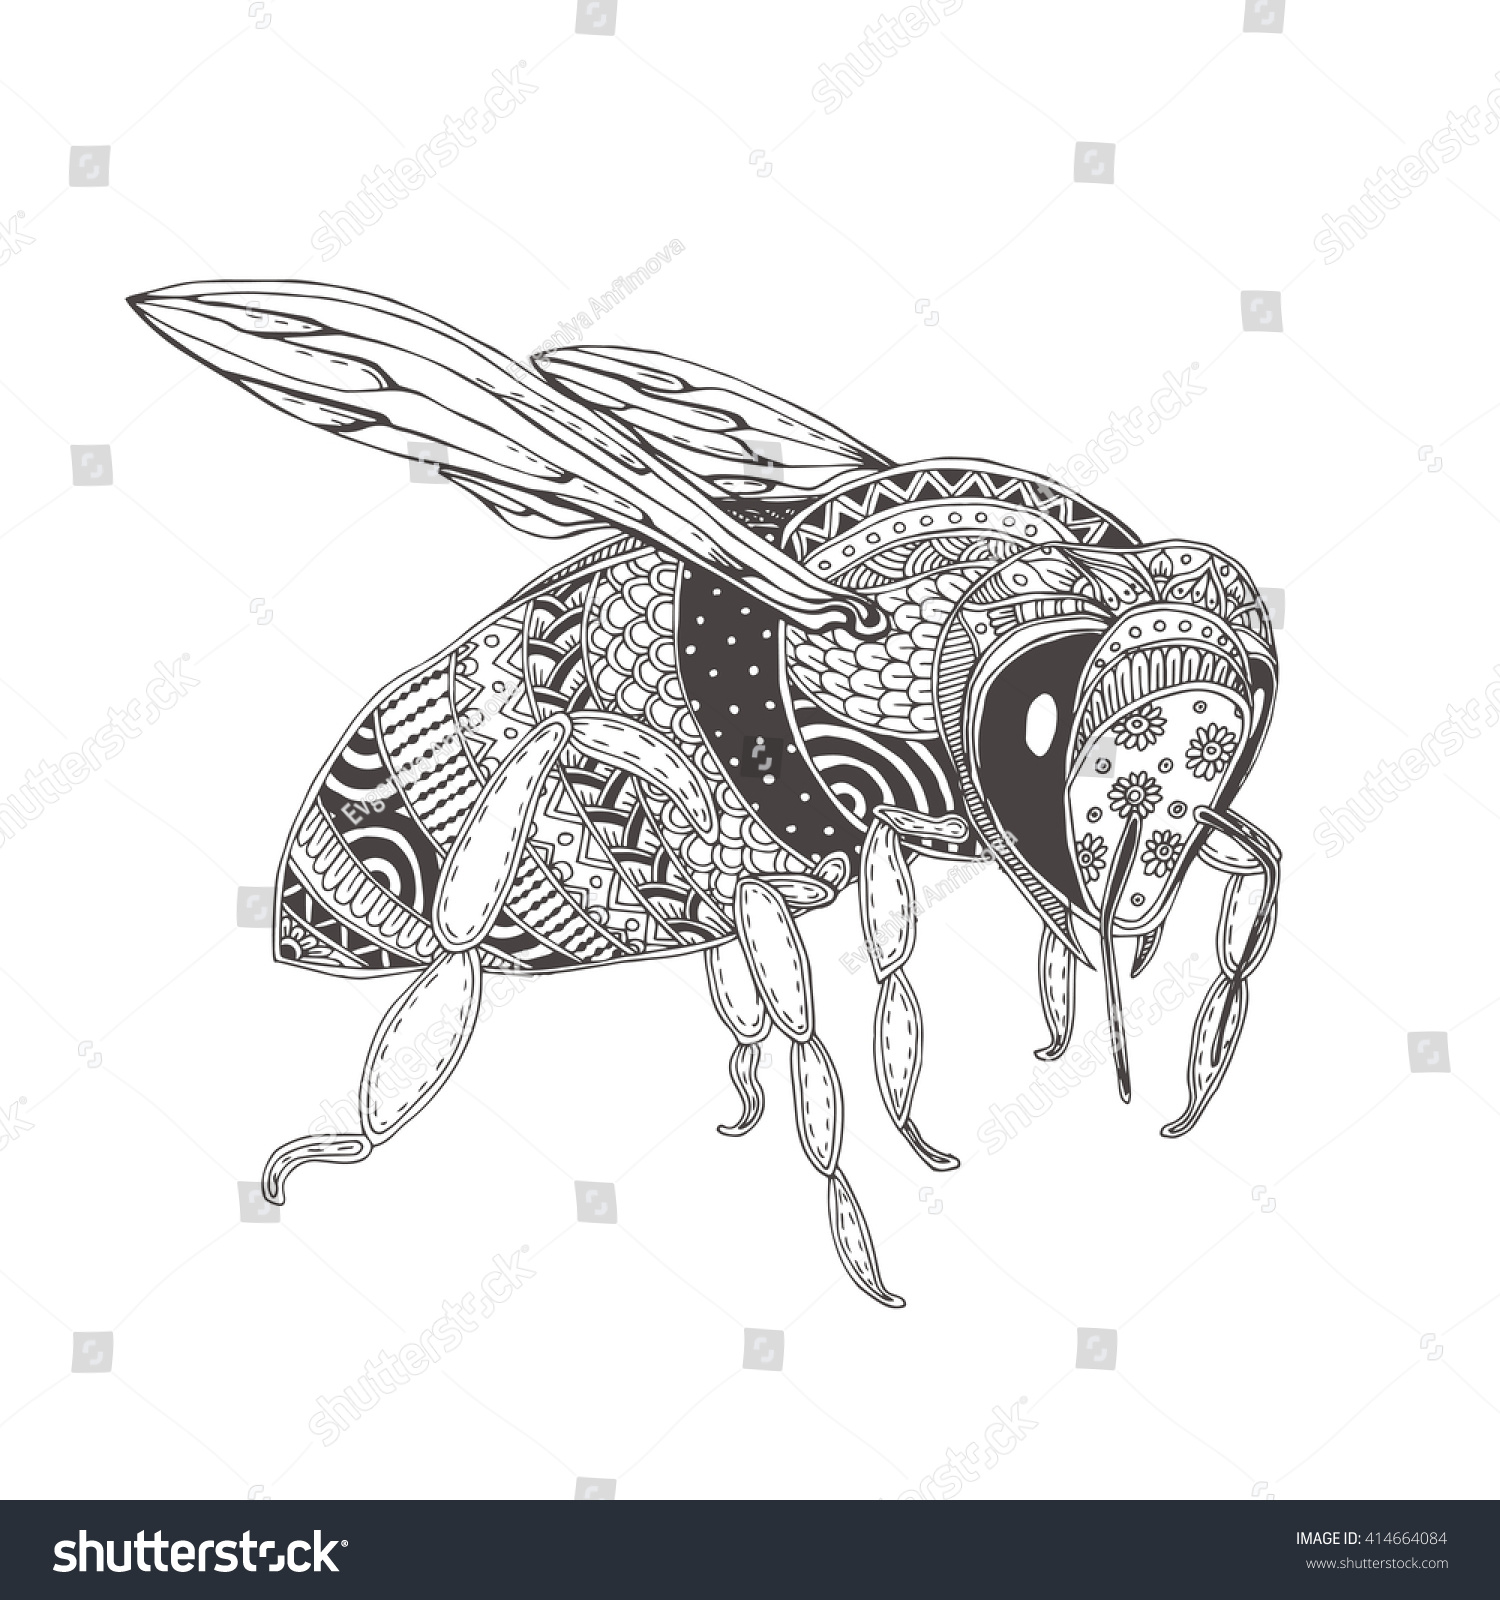 bee handdrawn honeybee ethnic floral doodle stock vector 414664084